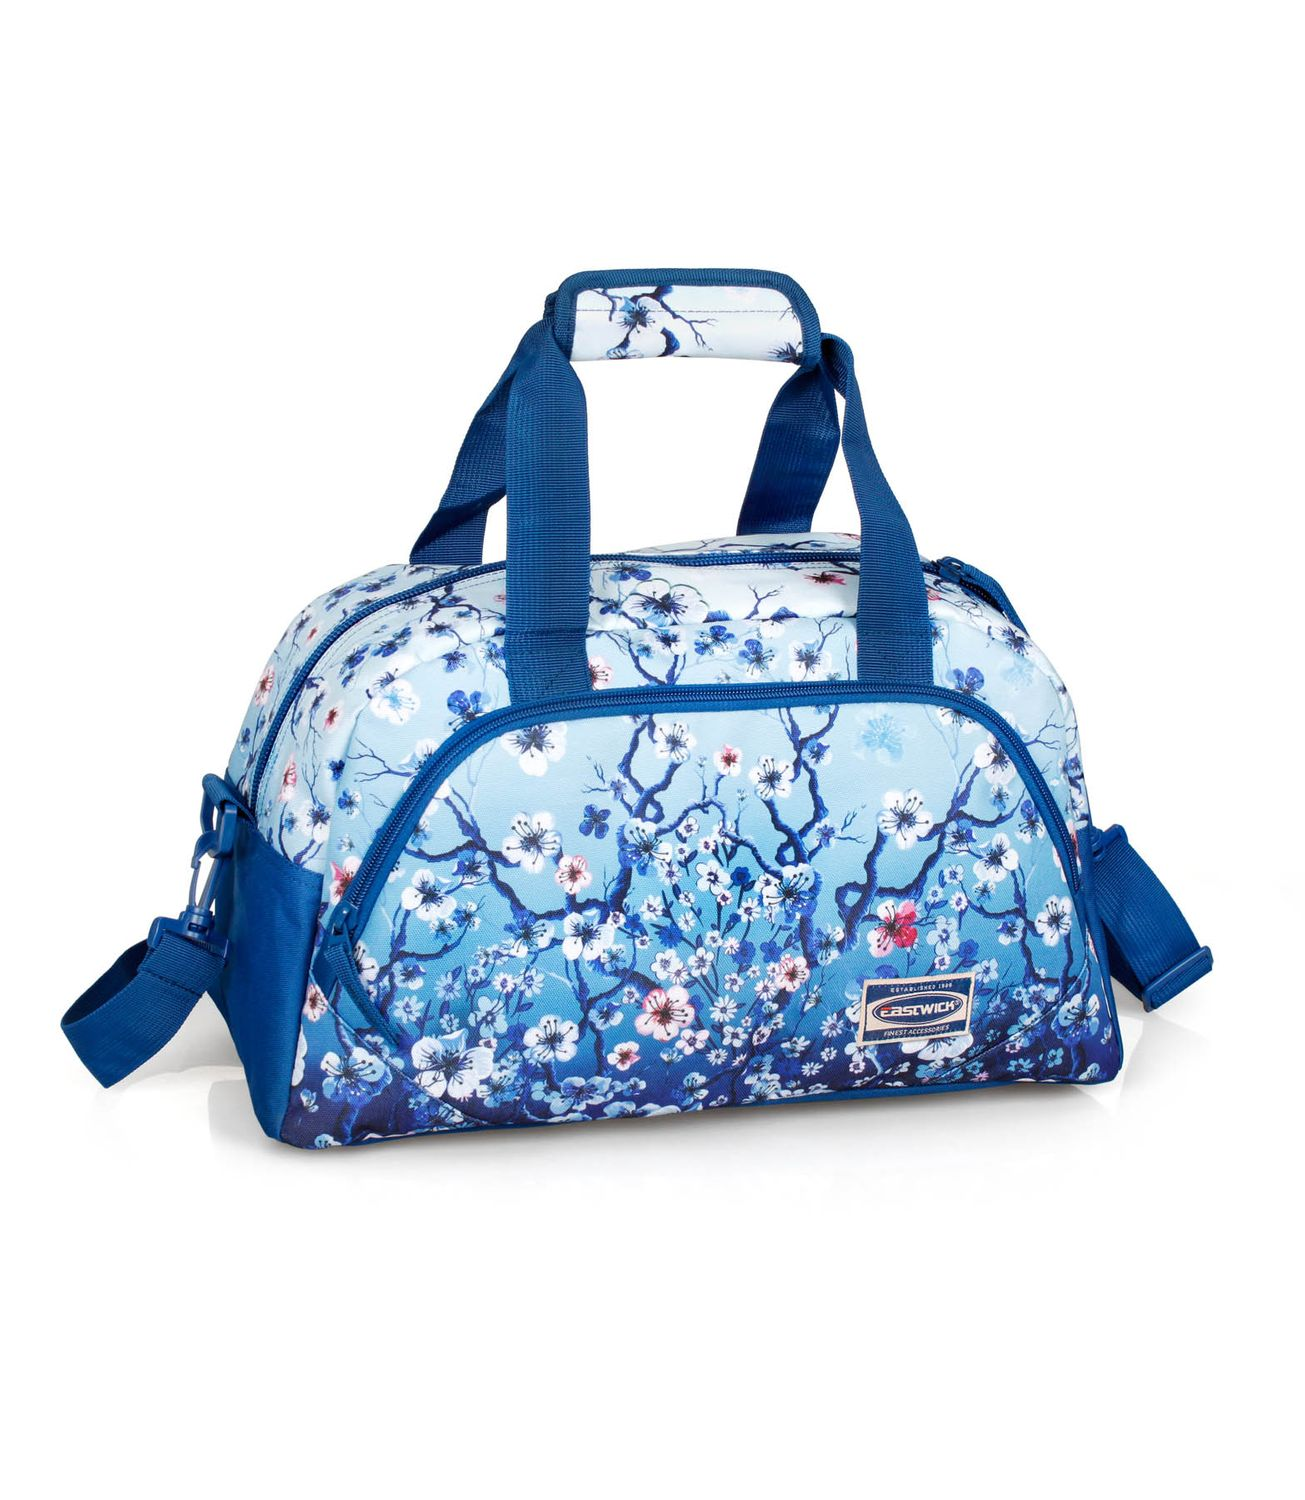 Holdall Travel Bag FLORAL Blue – image 1